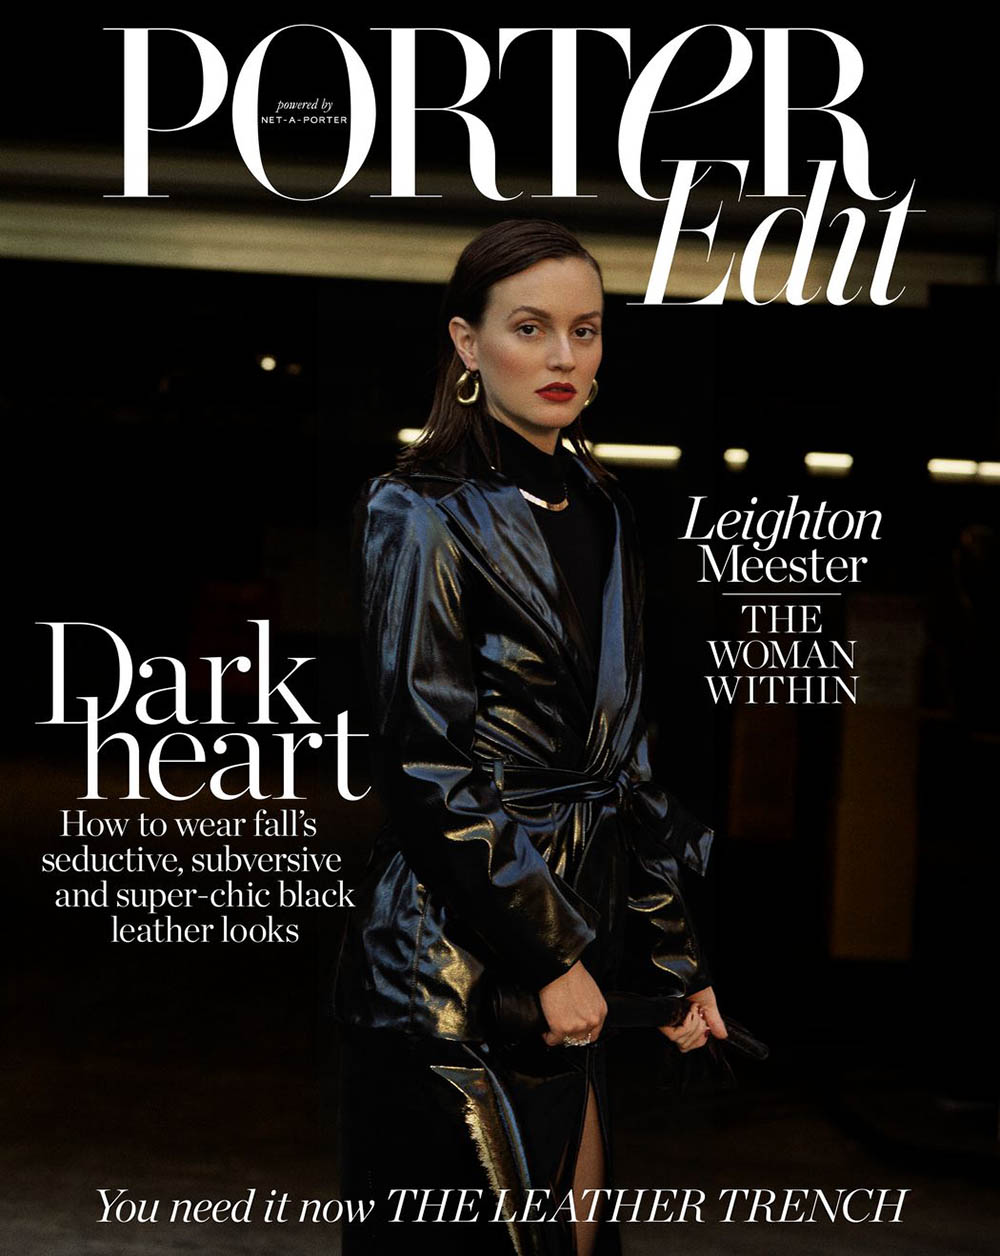 Leighton Meester covers Porter Edit September 21st, 2018 by Matthew Sprout